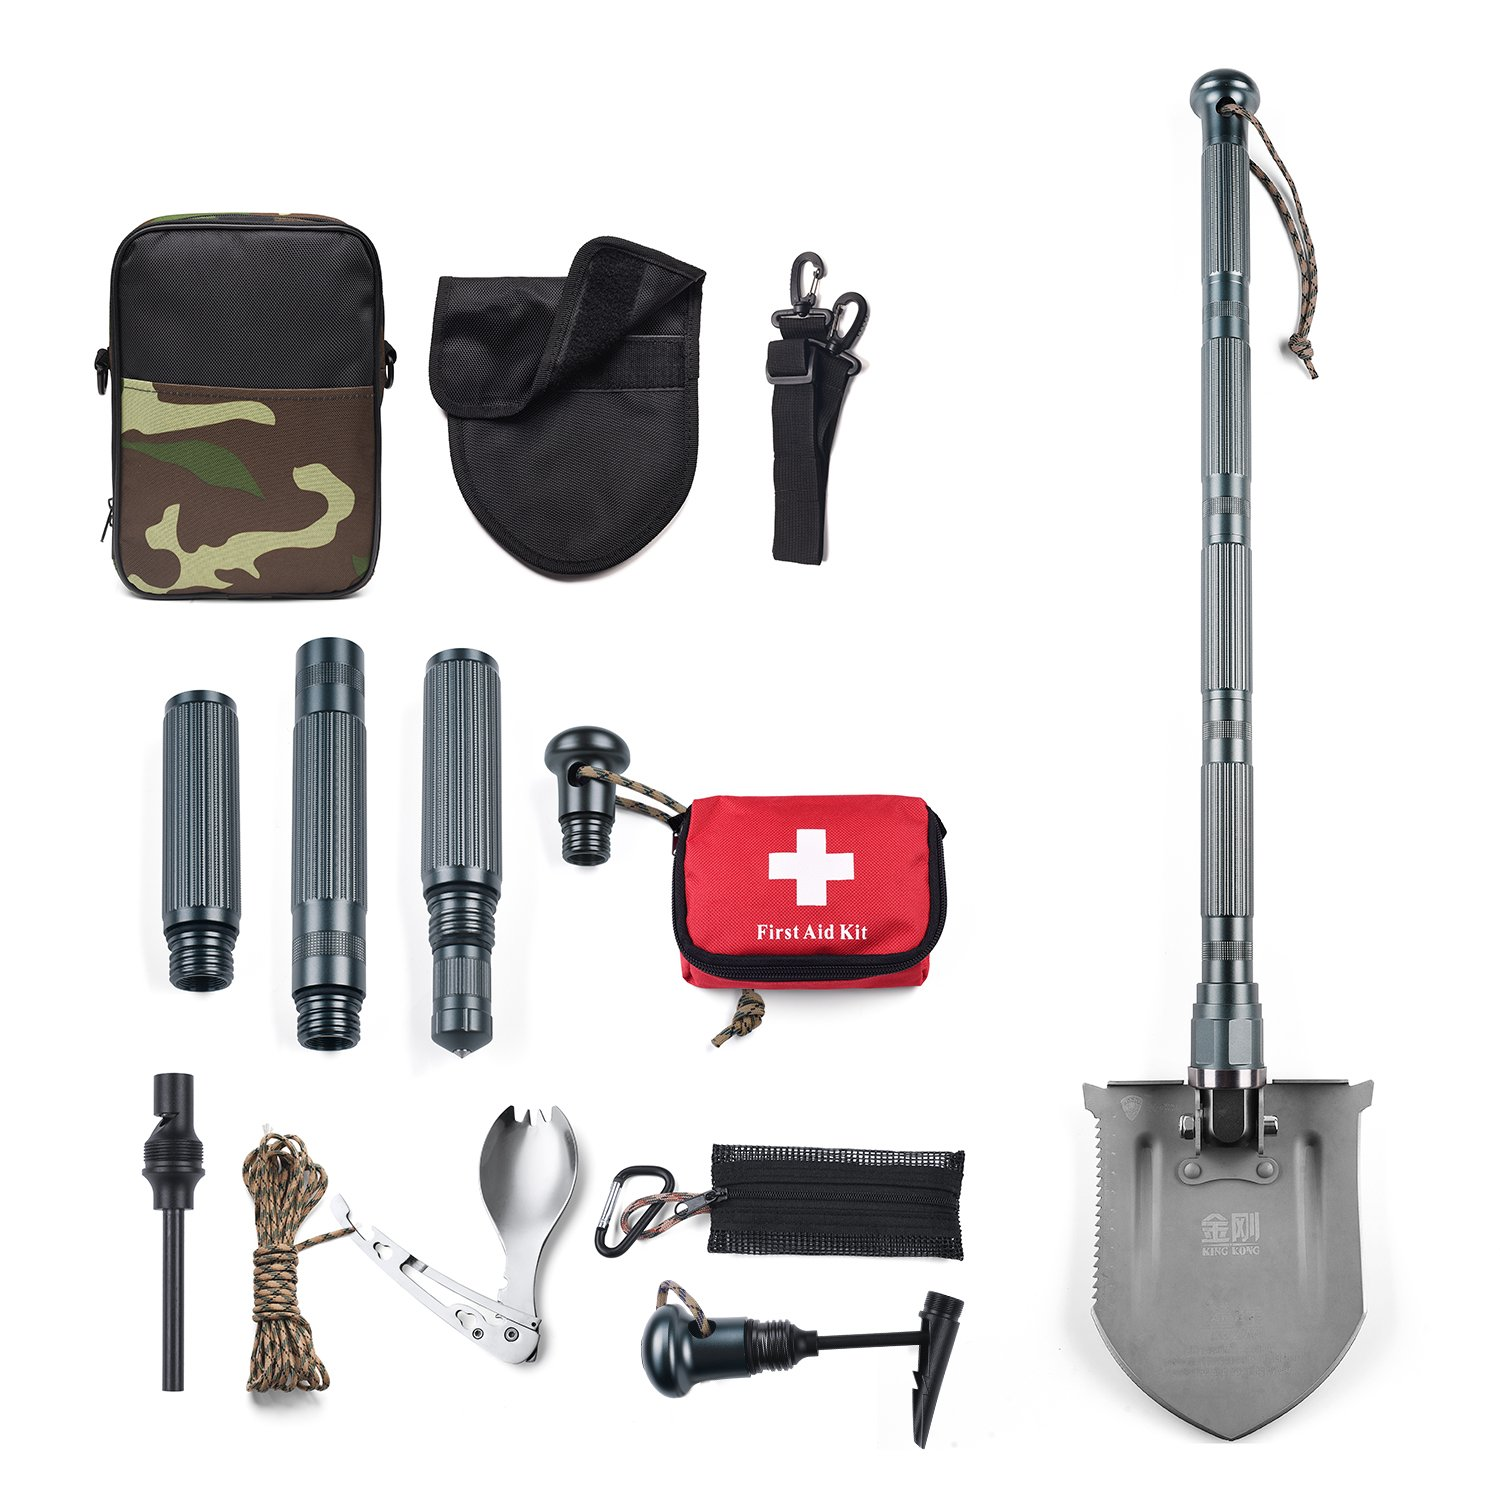 Wohous Military Folding Shovel Multitool